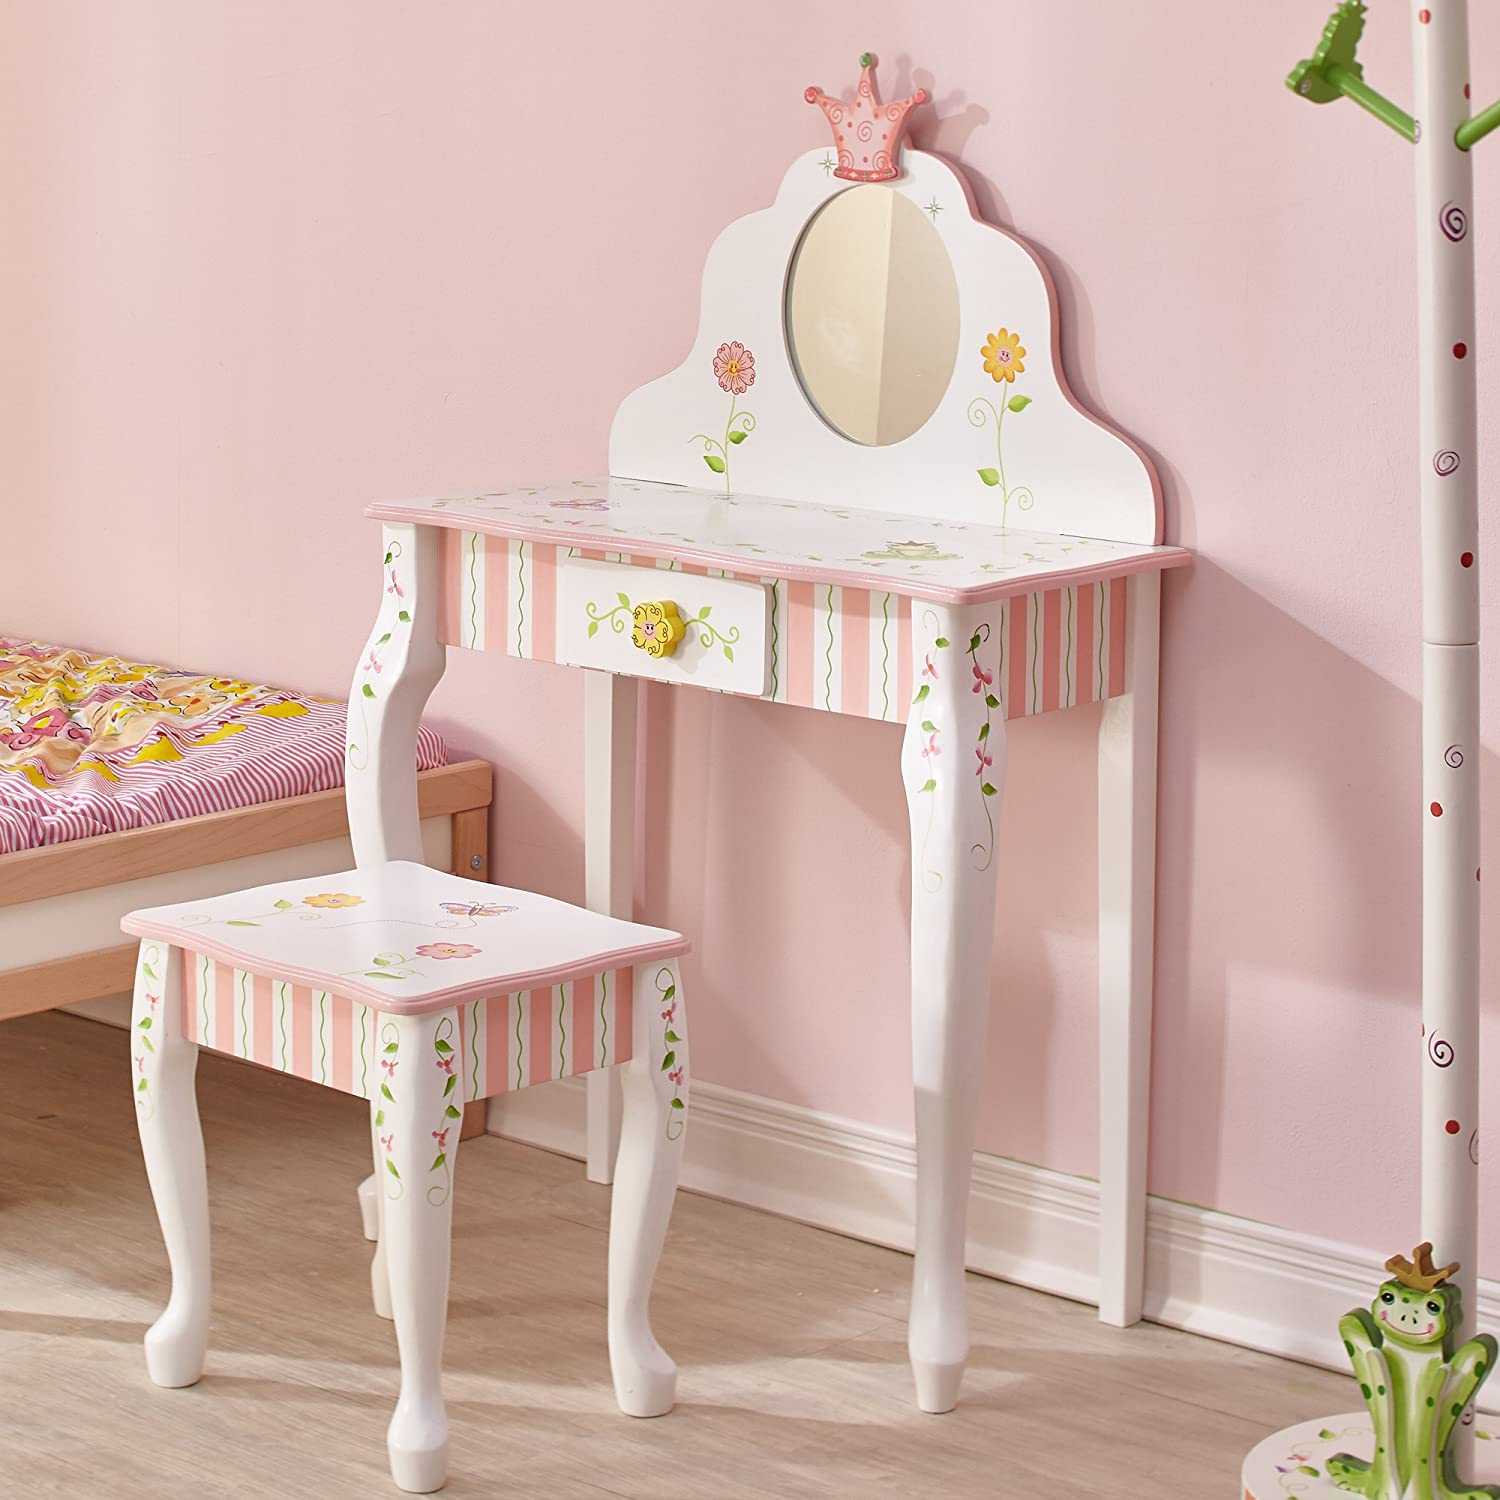 High Quality Amazon.com: Fantasy Fields   Princess U0026 Frog Thematic Kids Vanity Table And  Stool Set With Mirror Imagination Inspiring Hand Crafted U0026 Hand Painted  Details ...